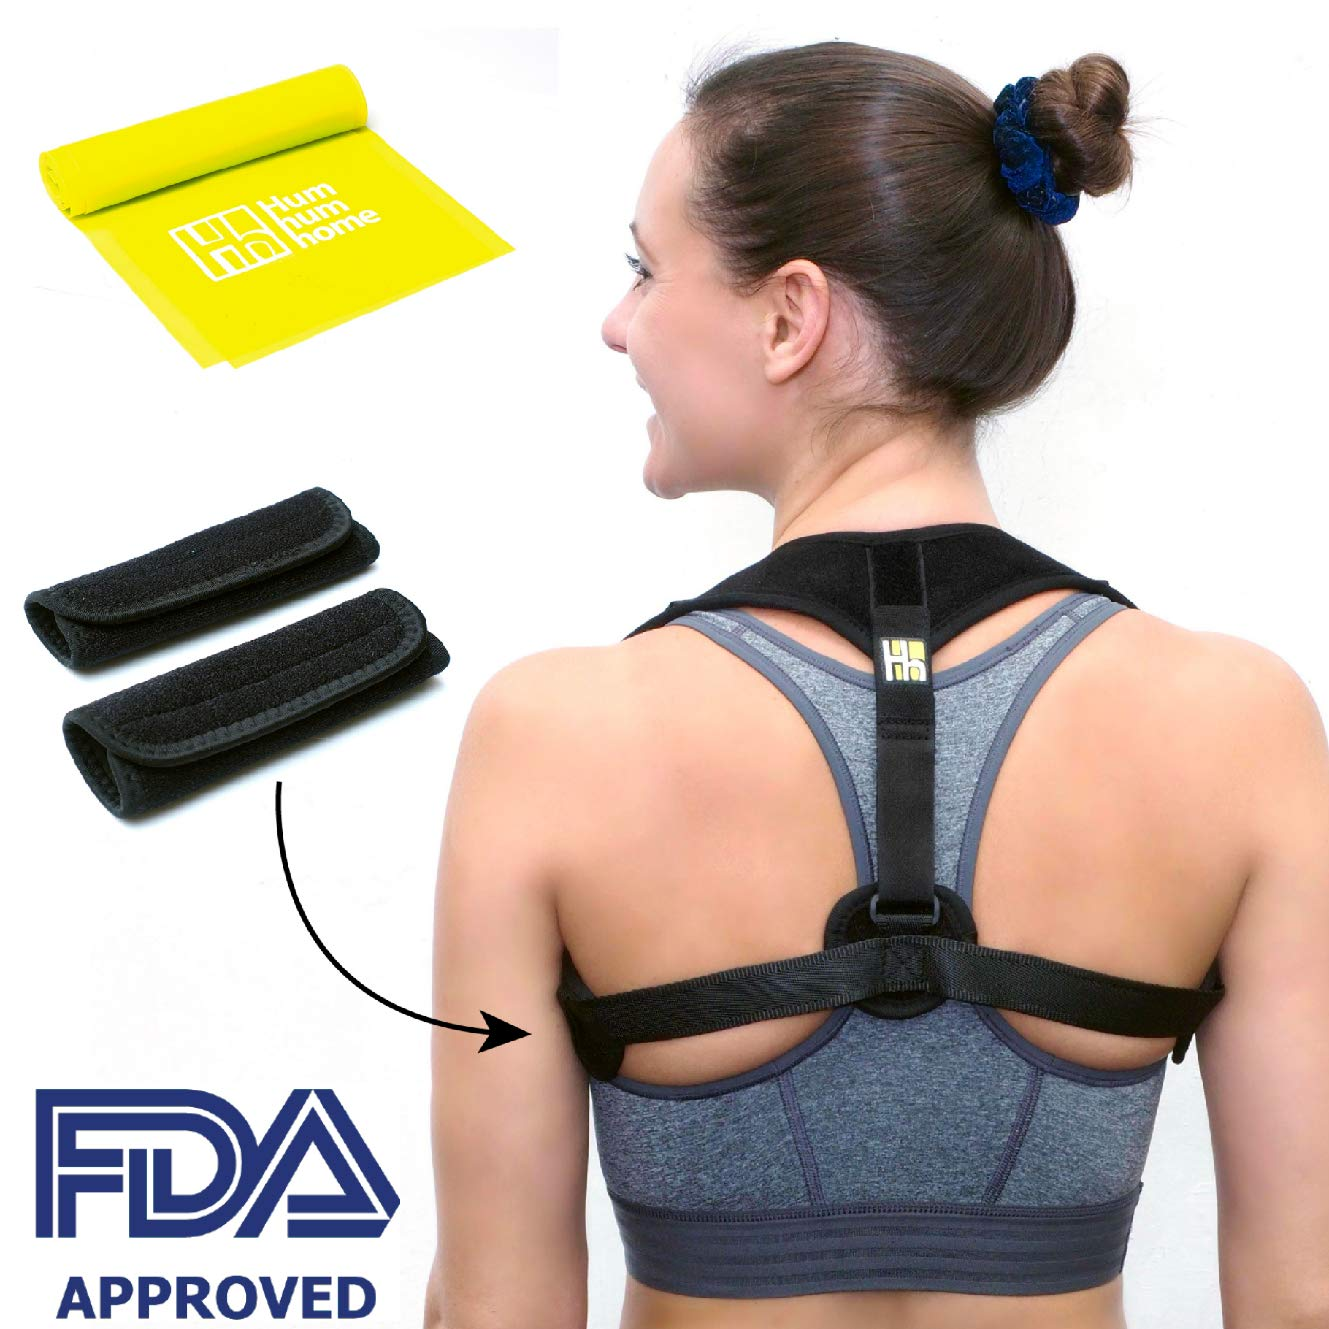 3b82d6b70 Amazon.com  Hum hum home Posture Corrector for Men and Women - Effective Upper  Back Clavicle Chest Support Device for Thoracic Kyphosis - Shoulder and  Neck ...